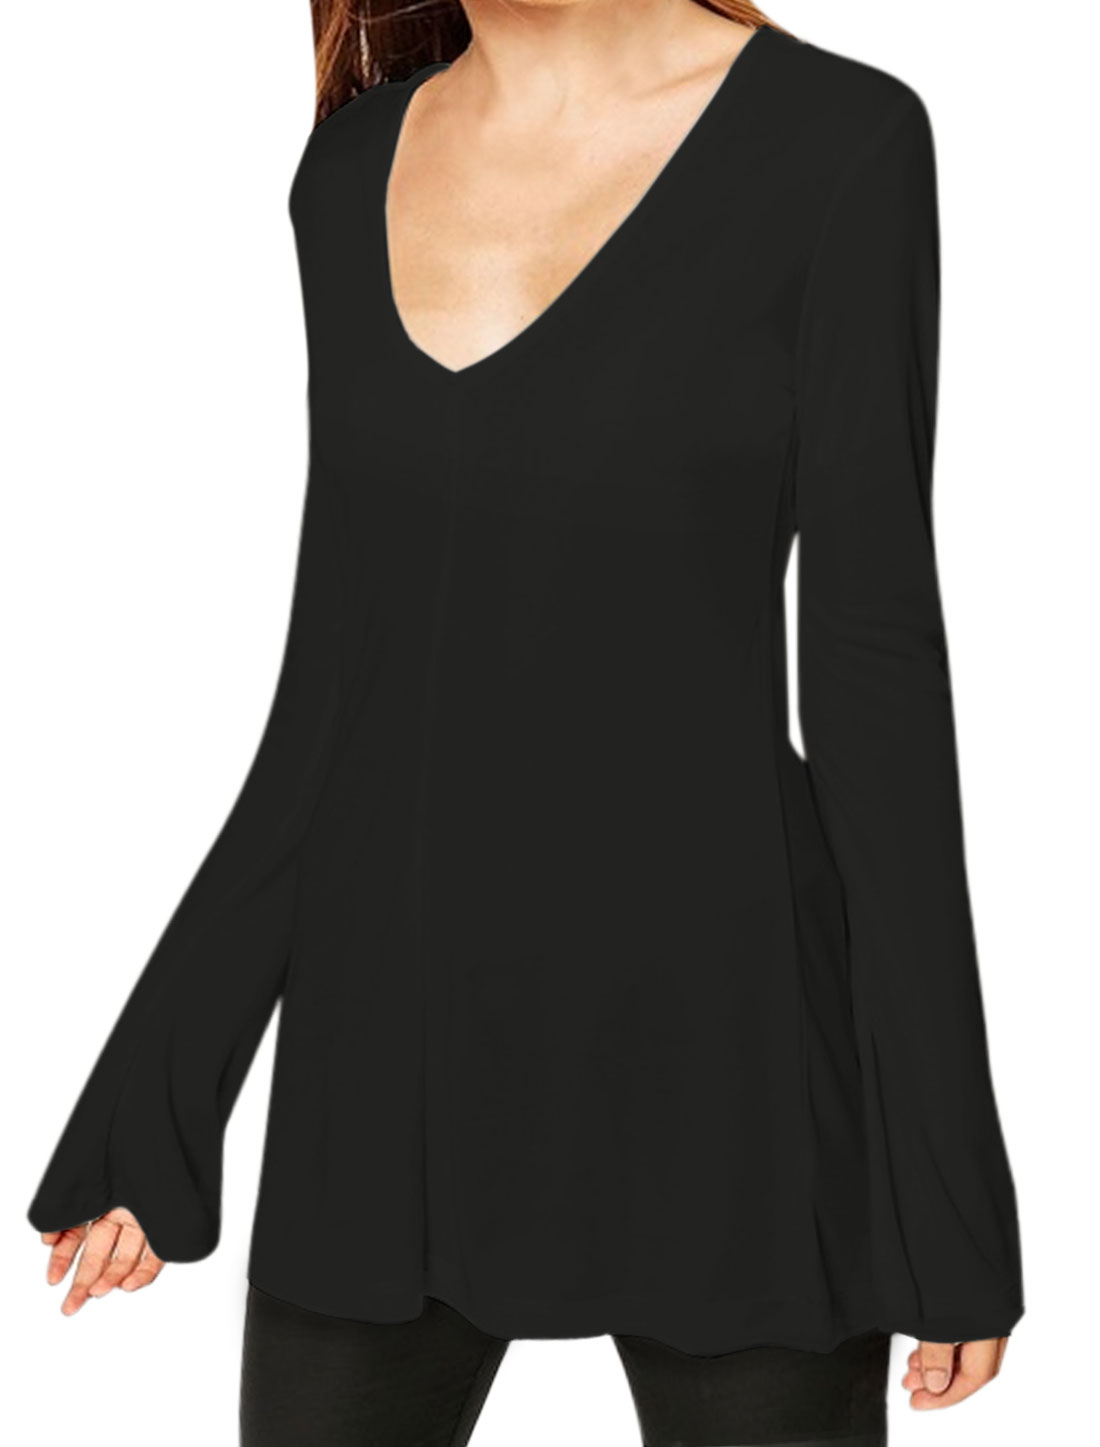 Lady V Neckline Long Bell Sleeves Slim Fit Tunic Top Black M